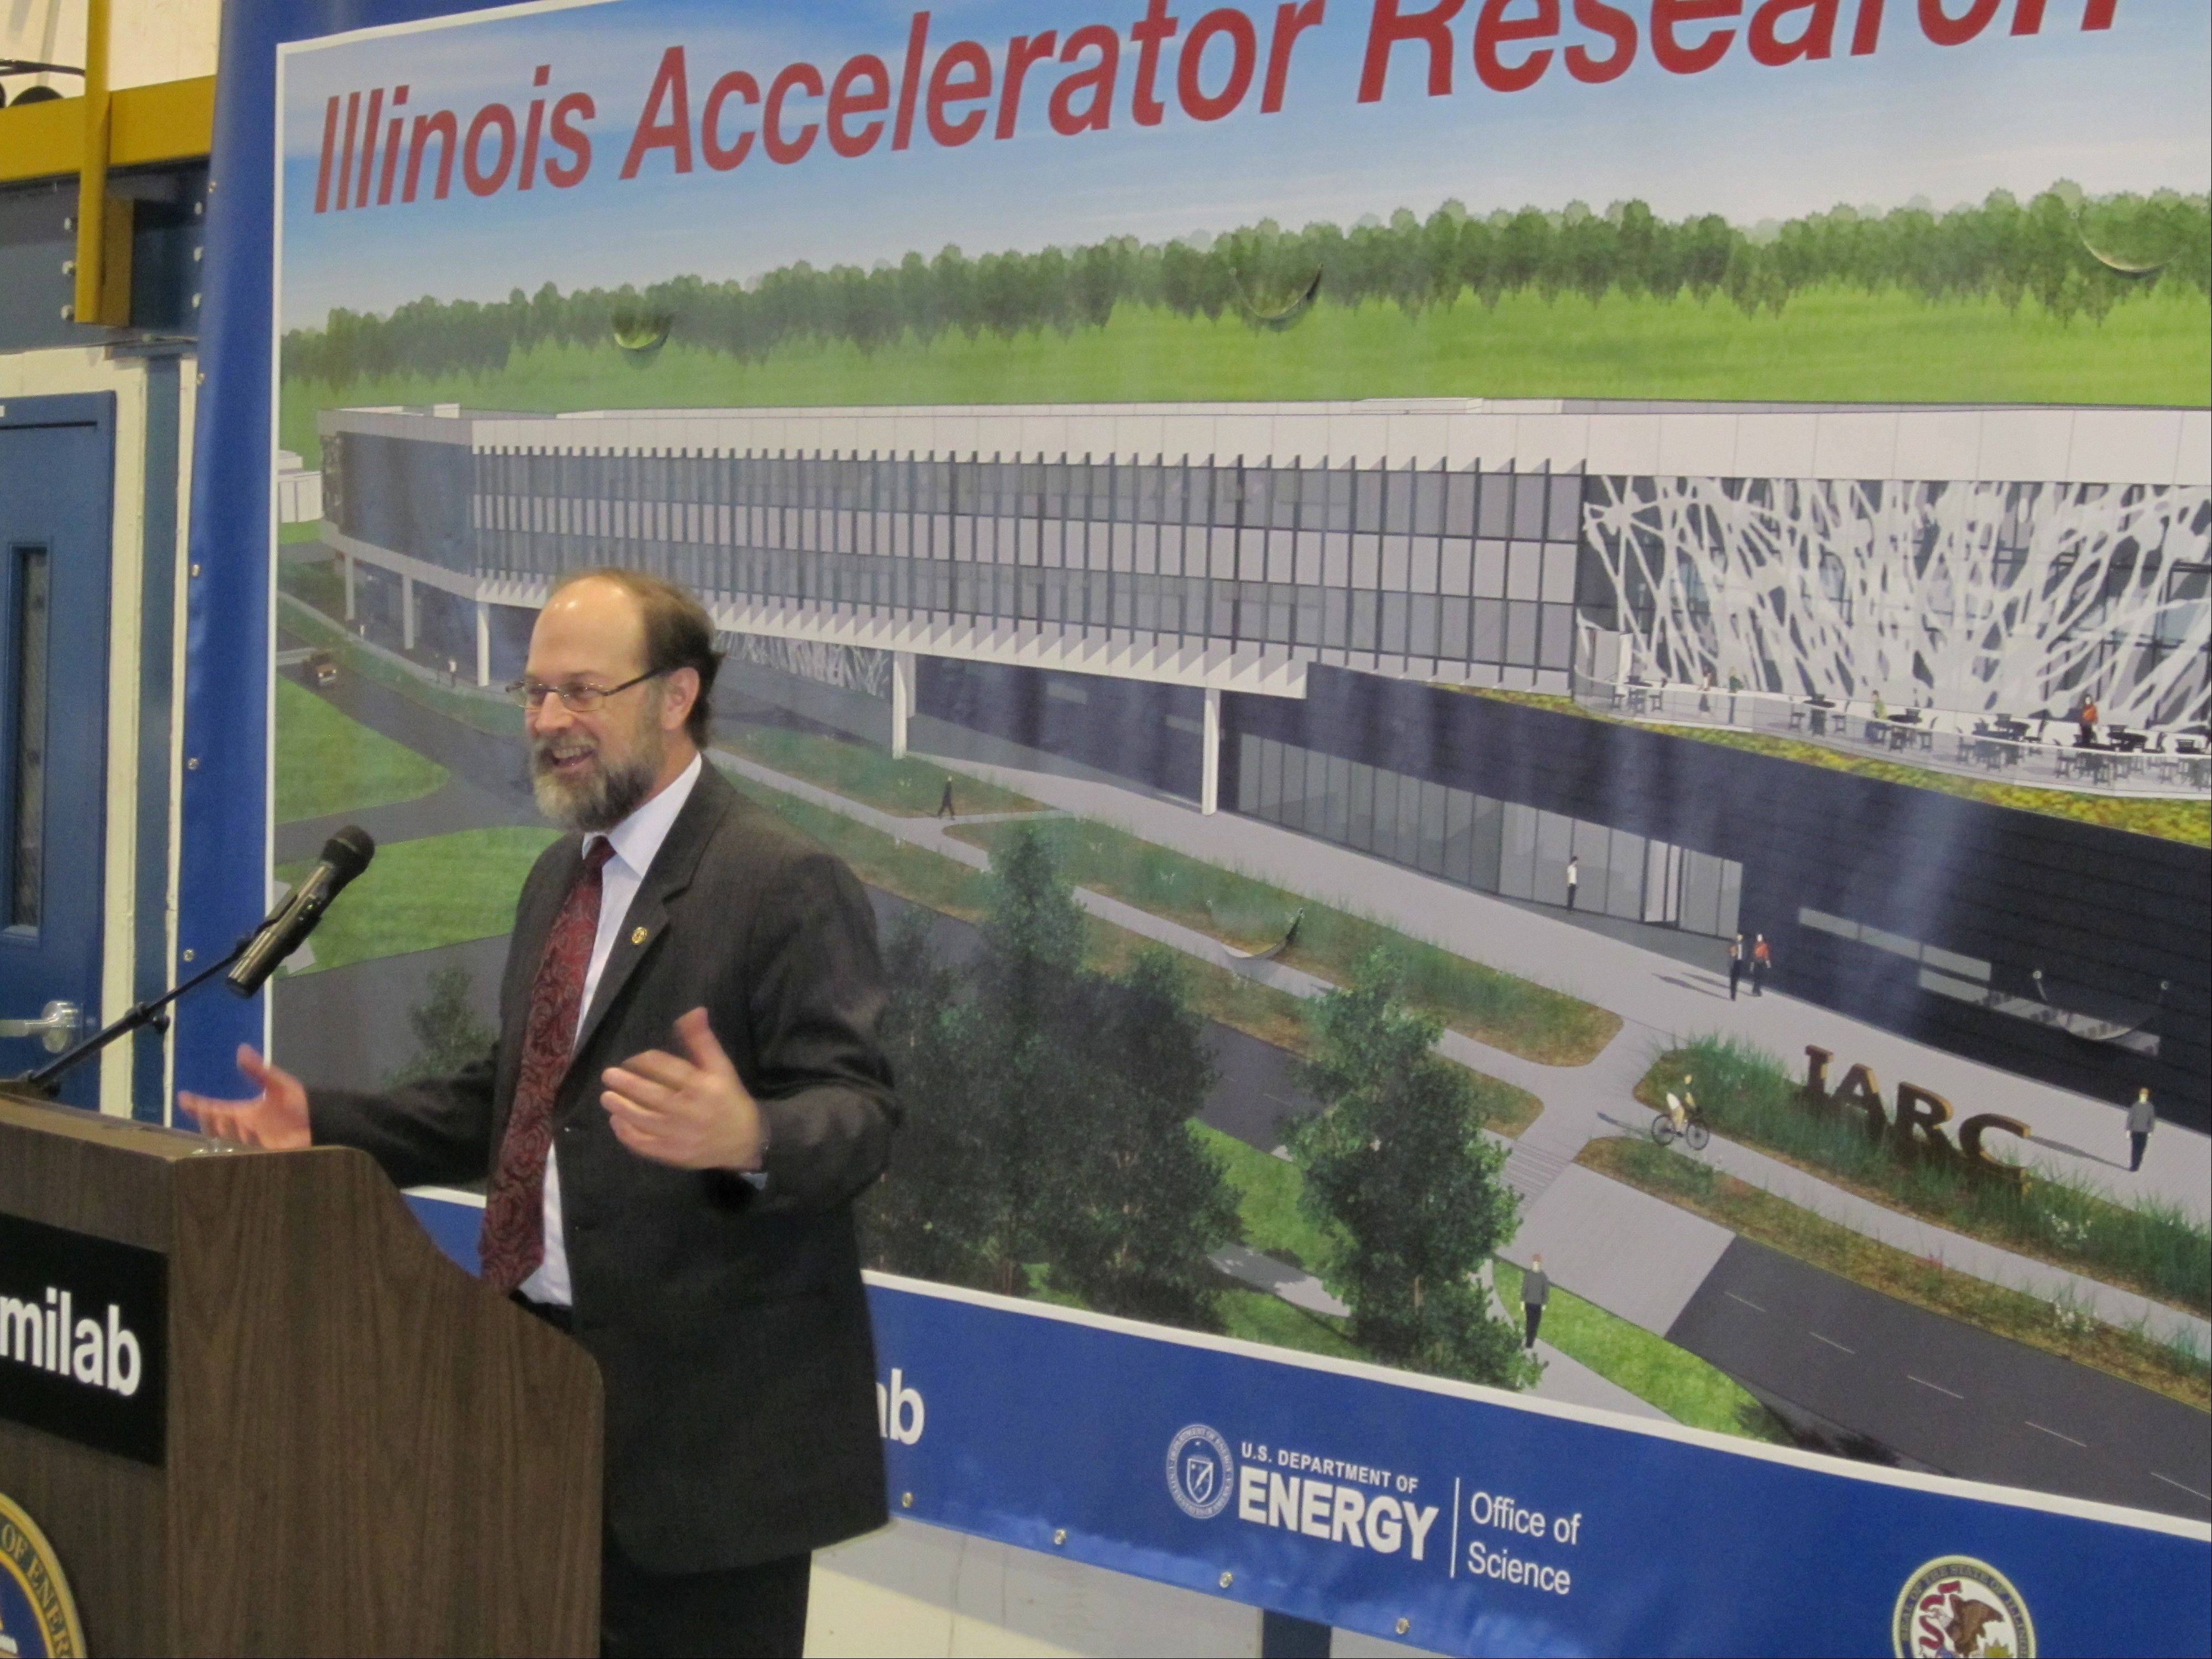 State, feds come together for new Fermilab research center